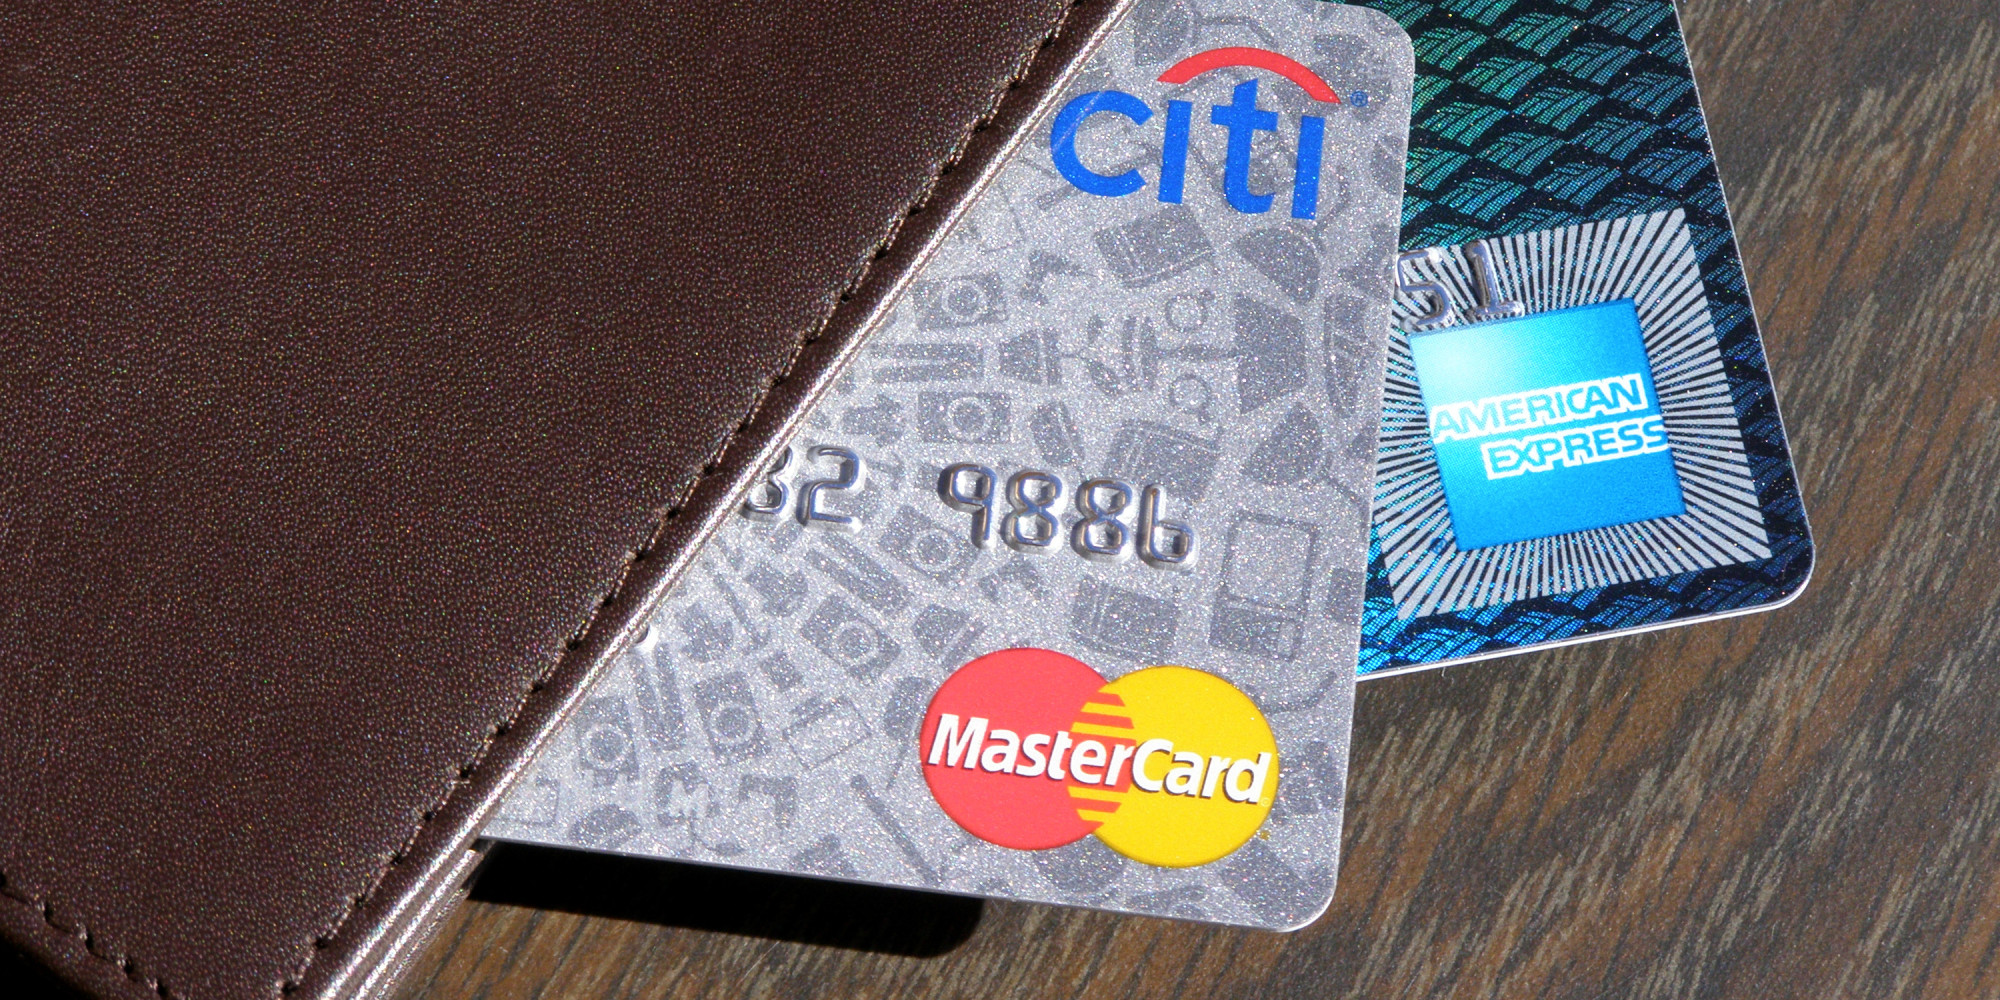 credit card panies abandon backpage over trafficking